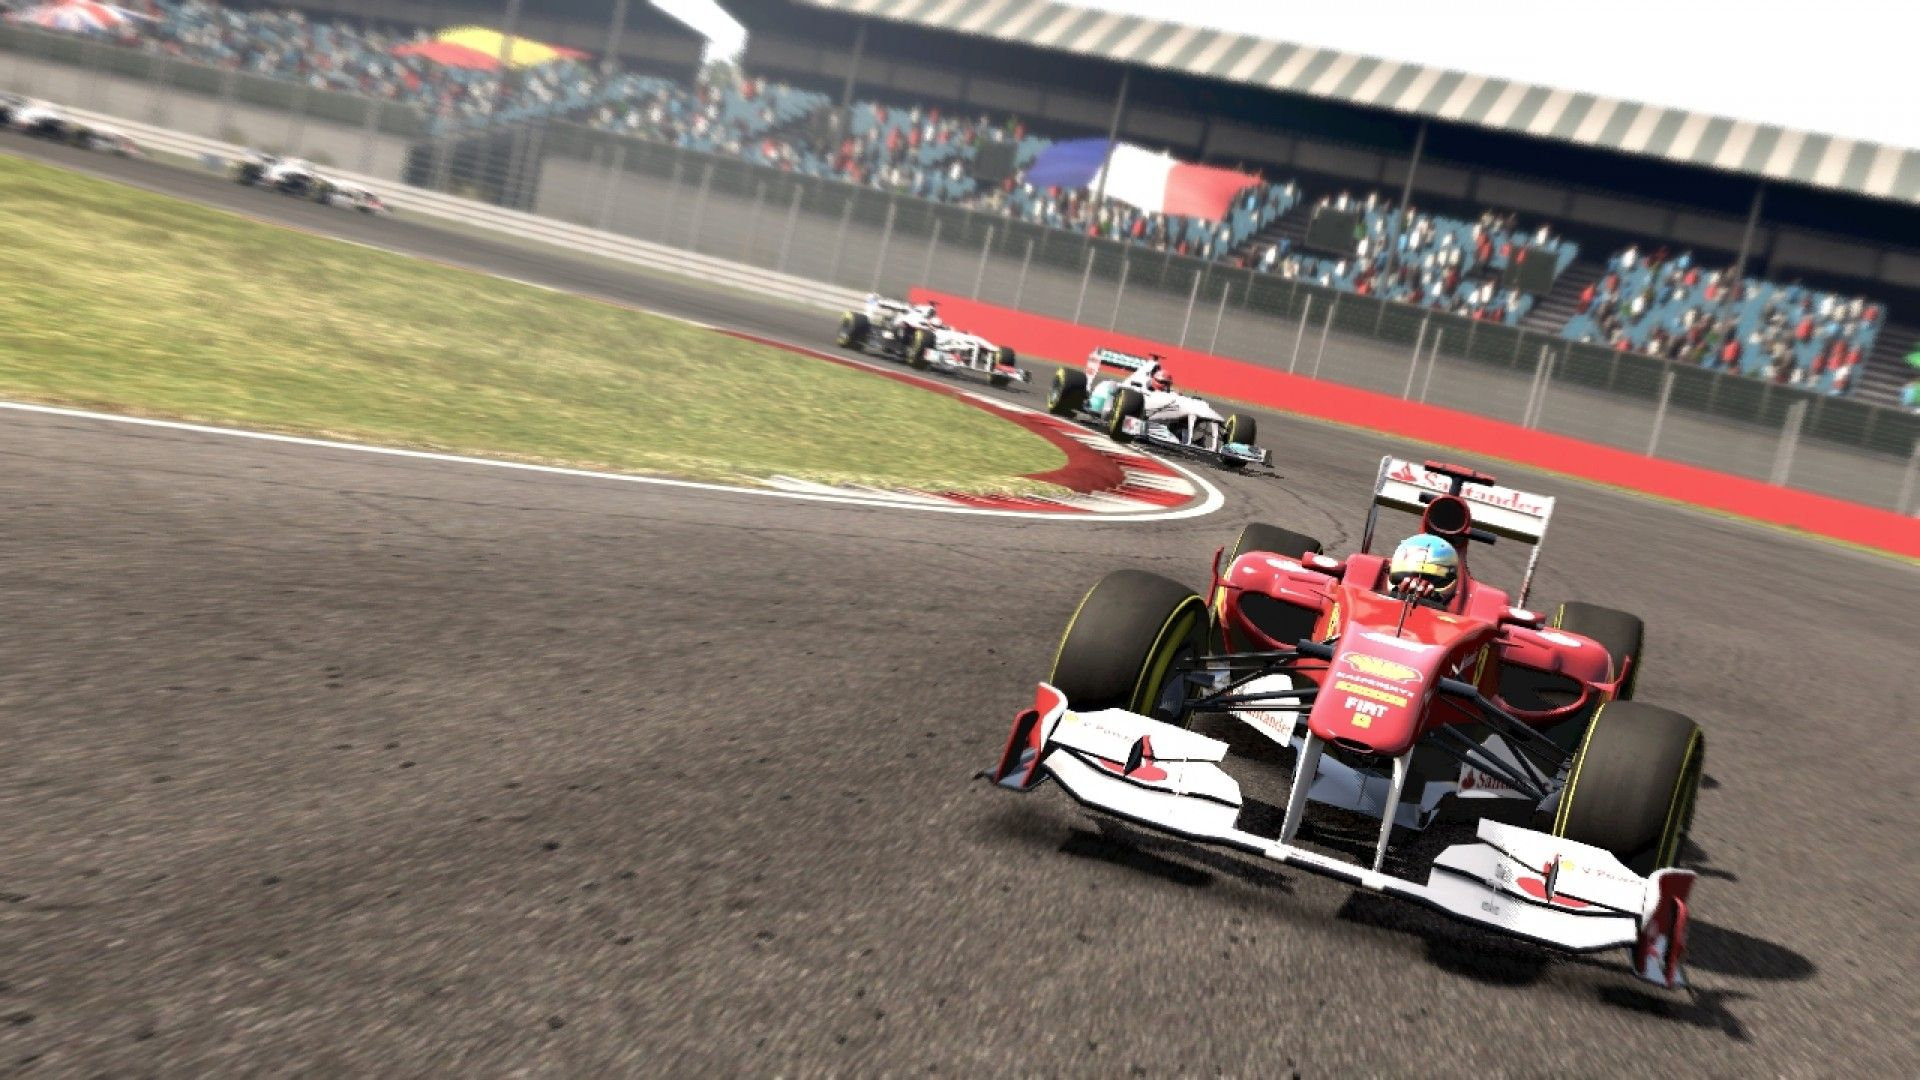 f1 2011 on steam rh store steampowered com F1 Driving F1 Driving